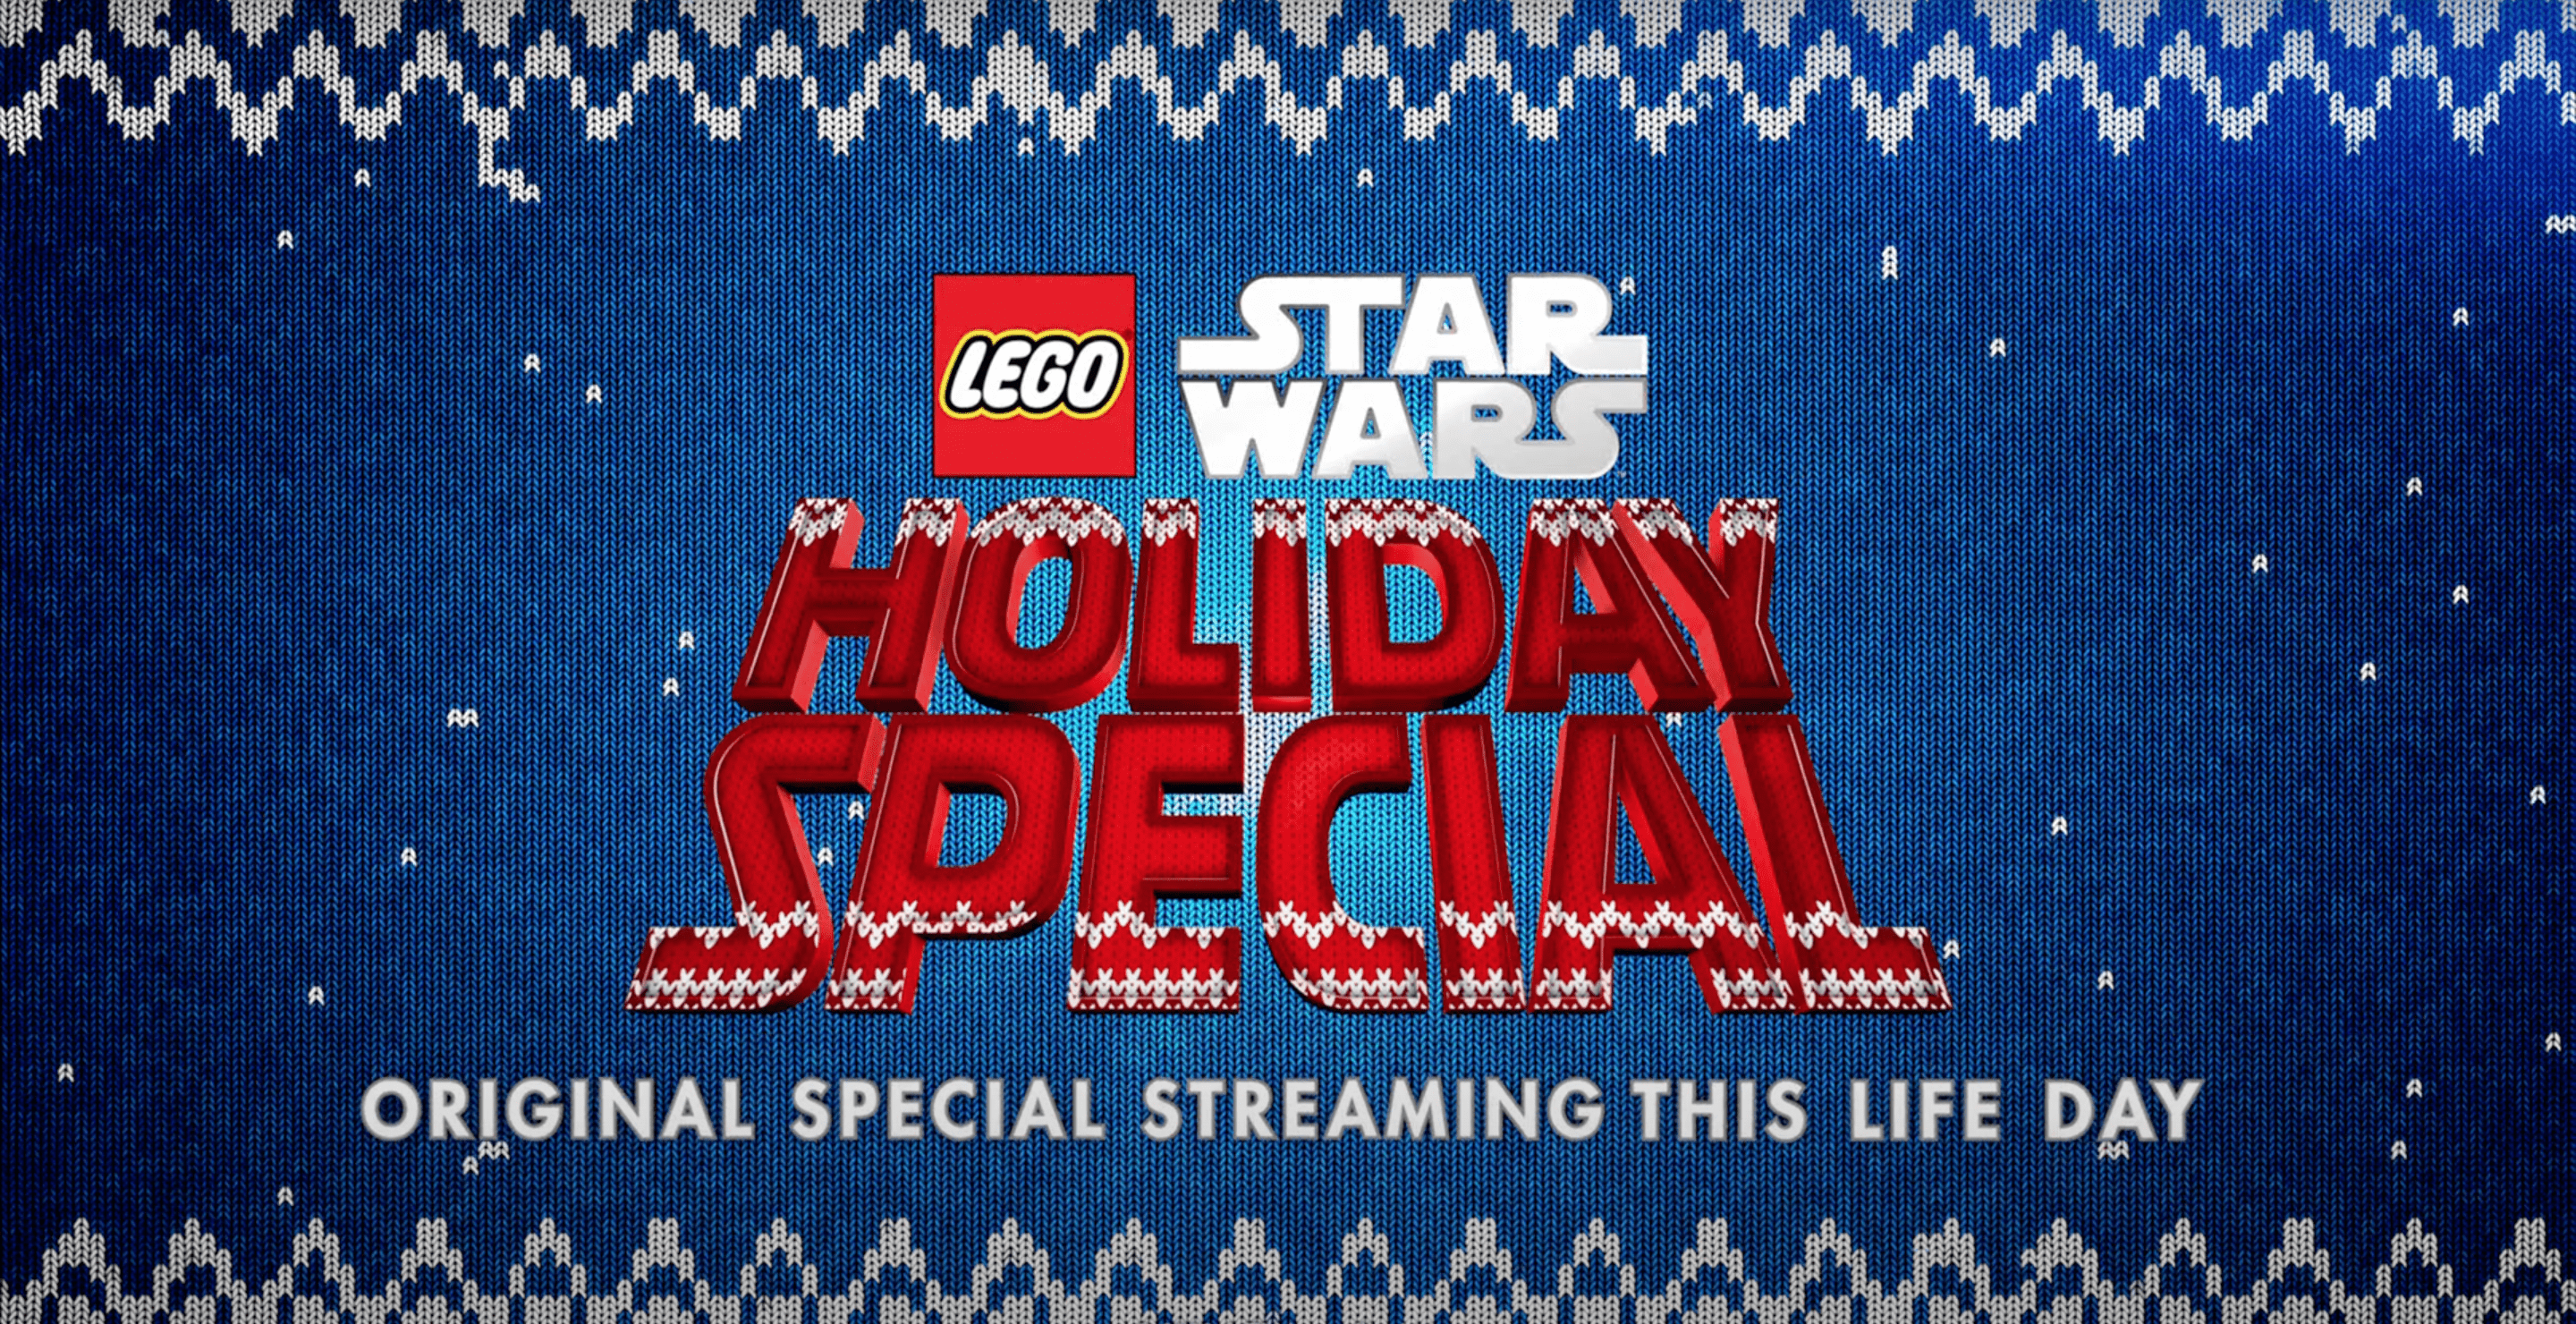 Star Wars LEGO Holiday Special: Watch the Disney+ Trailer!